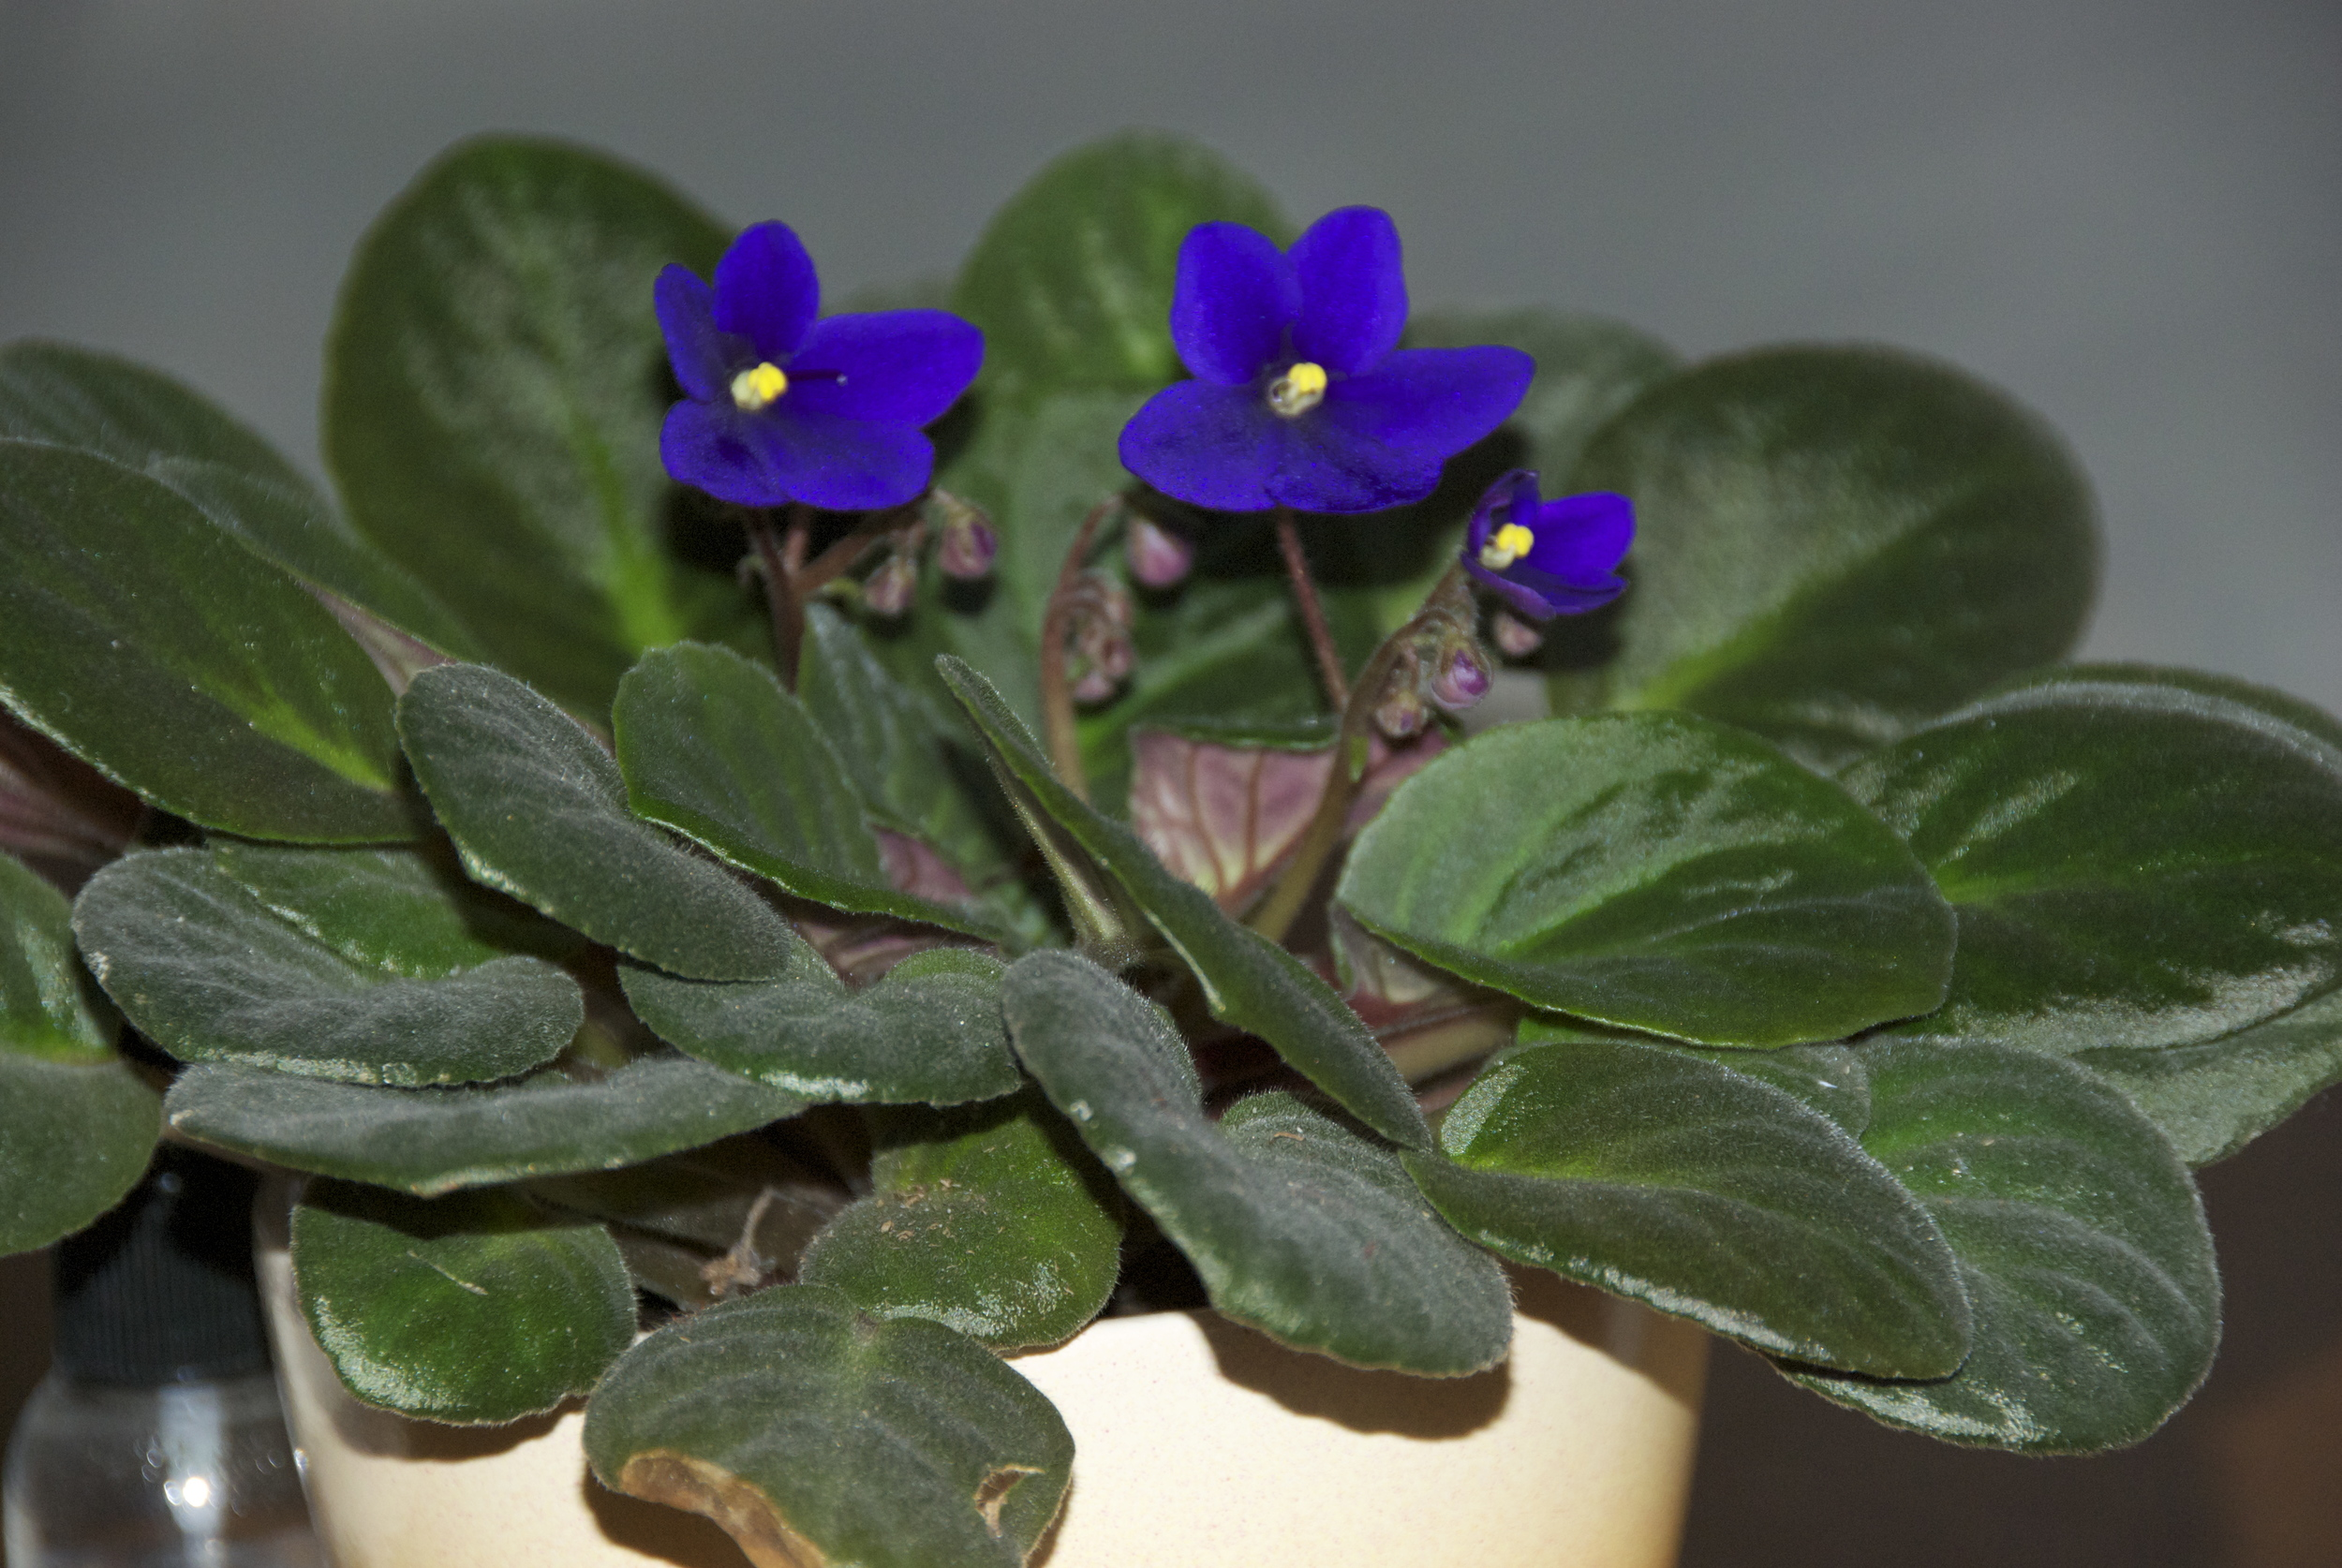 The African Violet